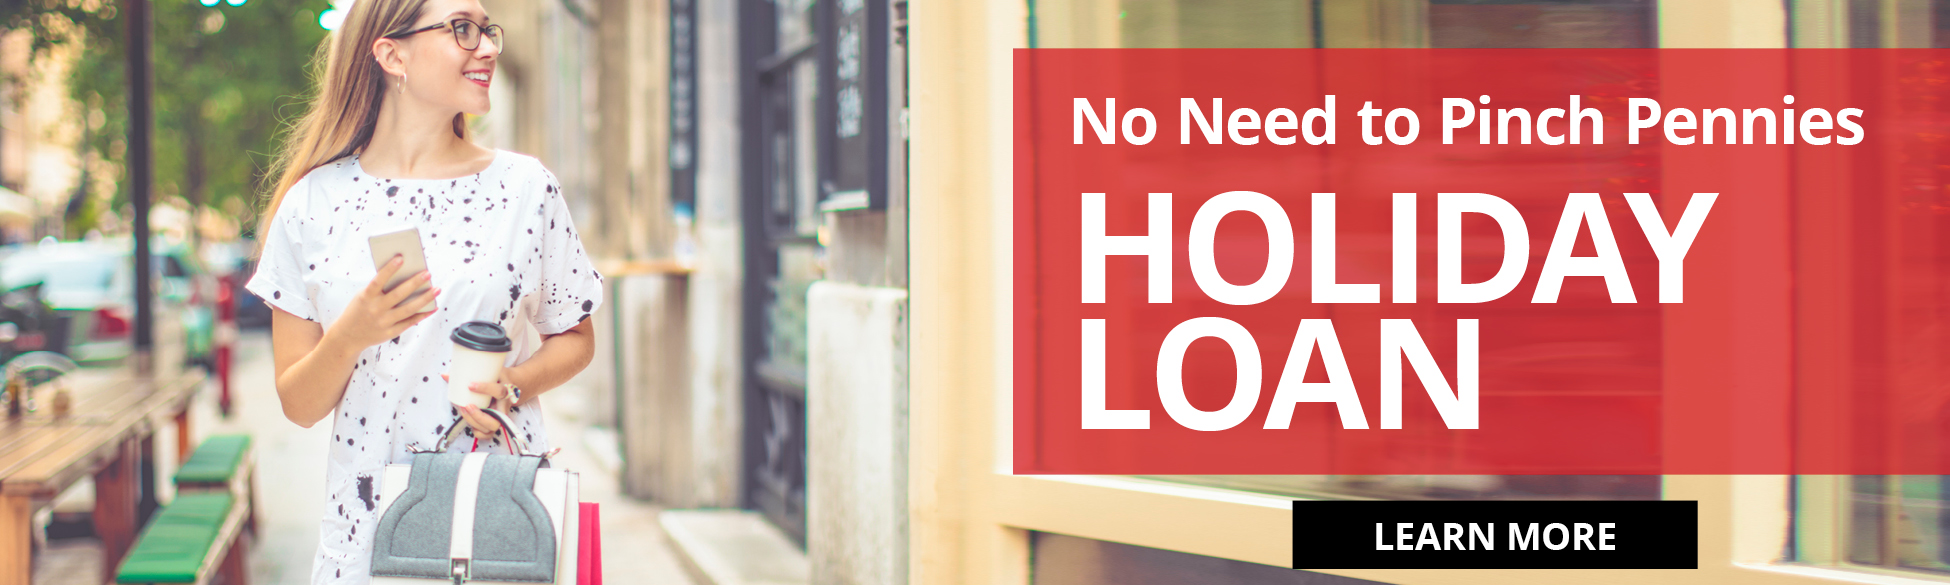 No Need to Pinch Pennies HOLIDAY LOAN LEARN MORE